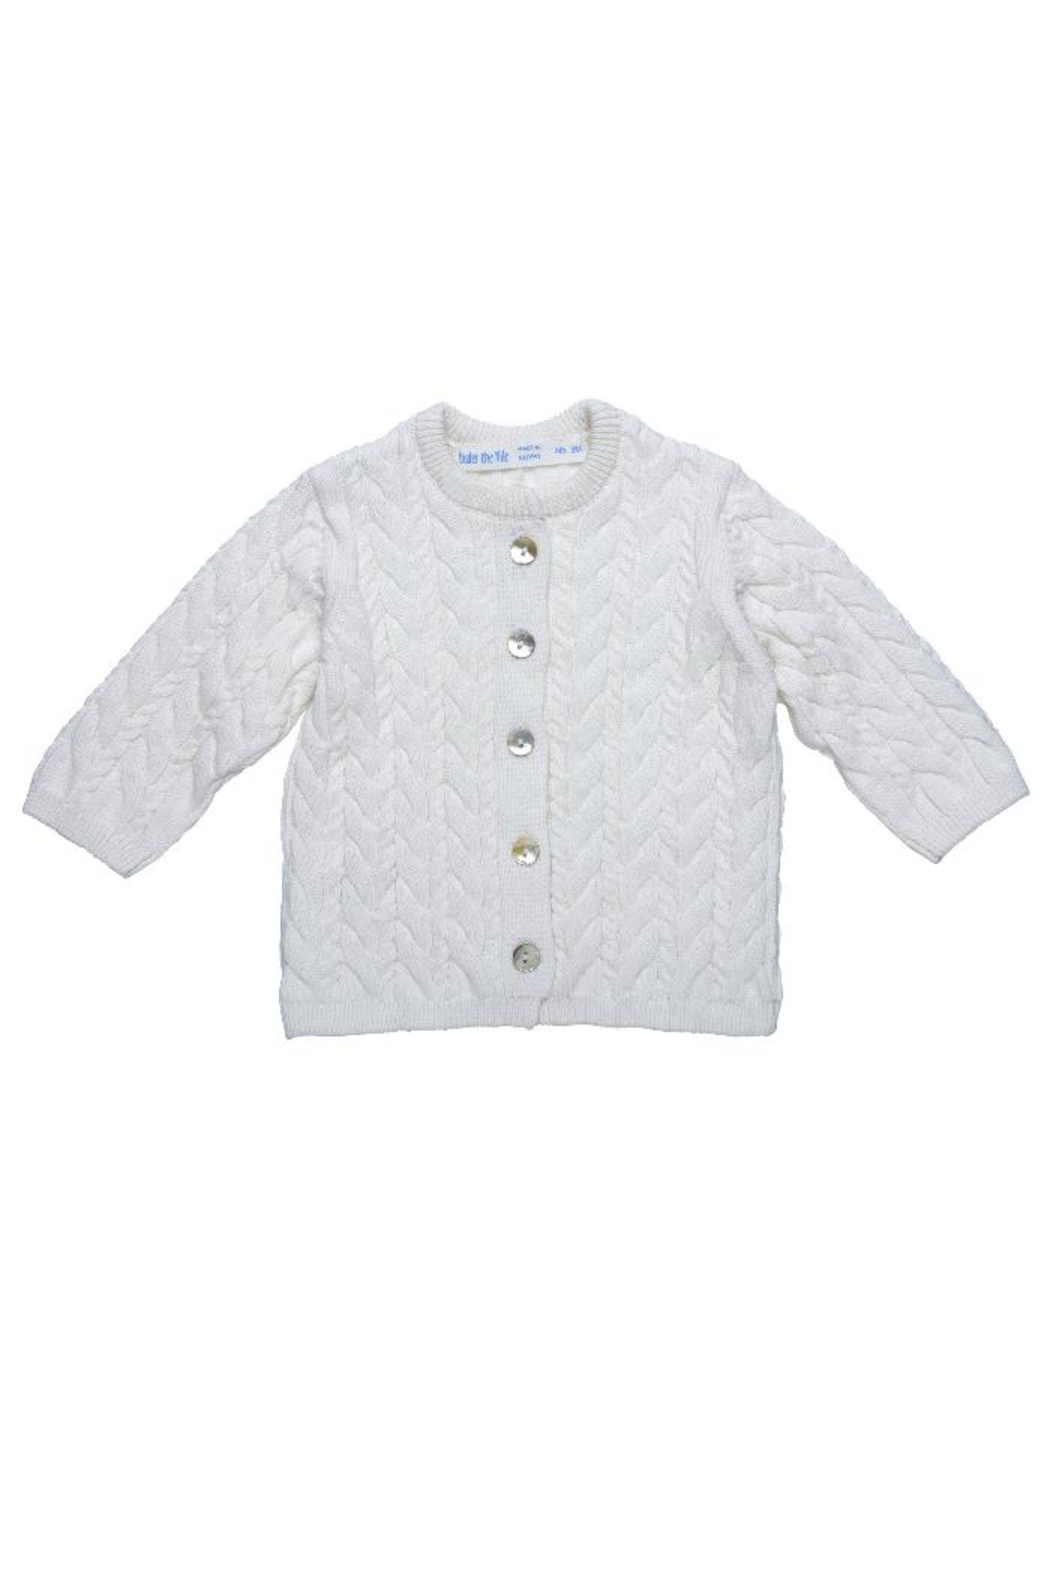 Under the Nile Off-White Cardigan Sweater from Arkansas by Terra ...